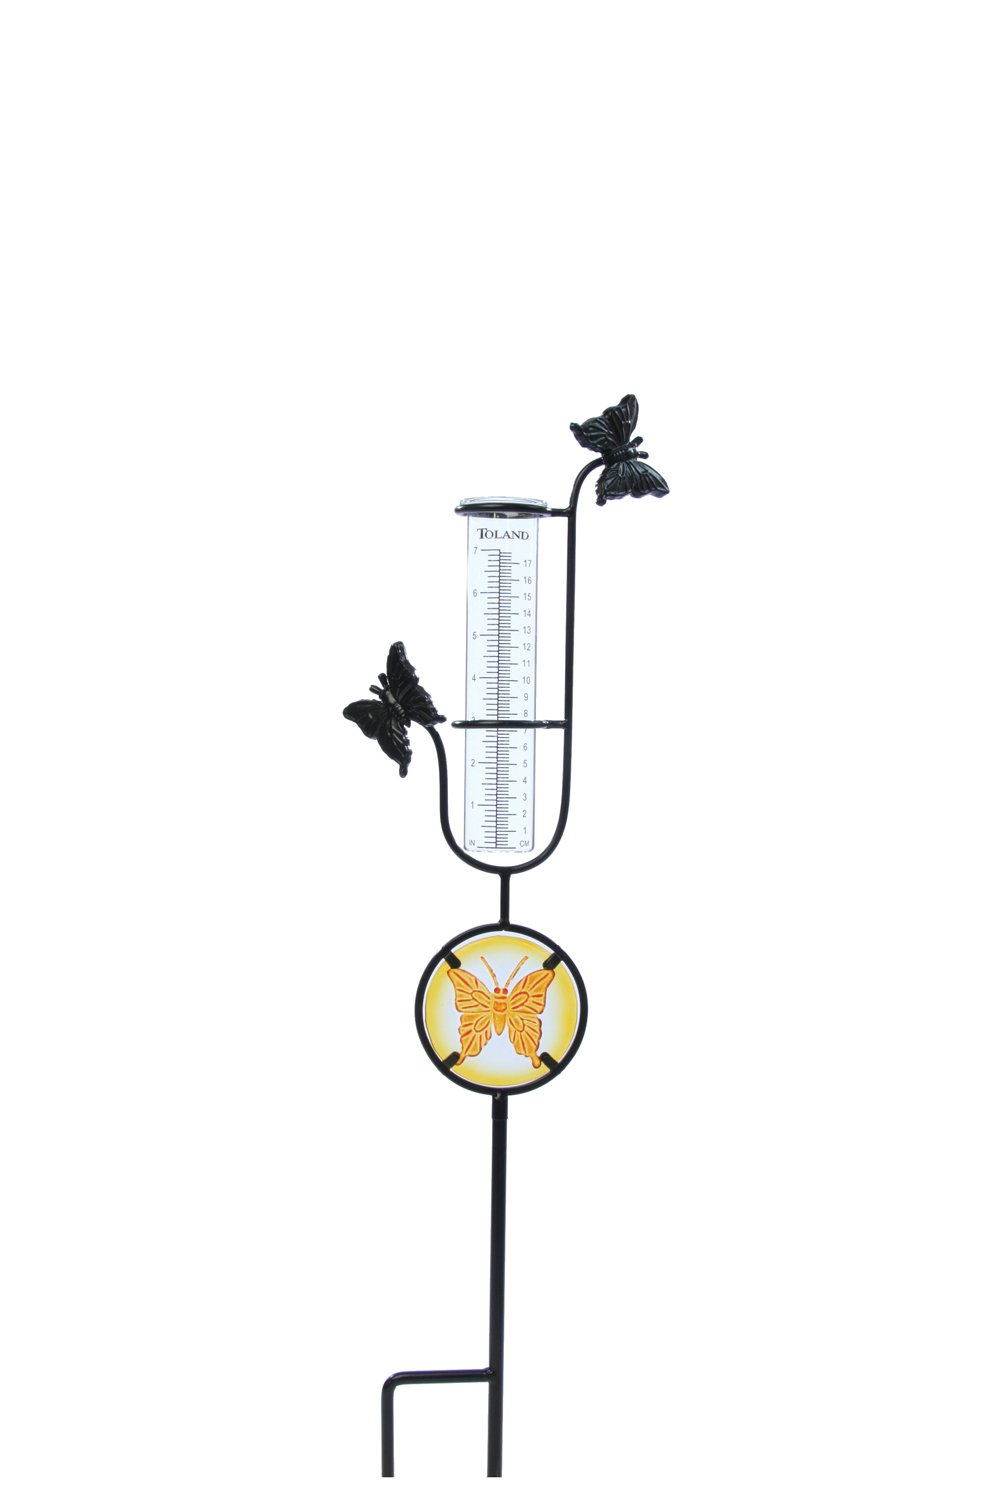 Toland Home Garden Butterfly Decorative Outdoor Garden StakeRain Gauge Statuewith Glass Udometerfor Yards, Gardens, and Planters 218180